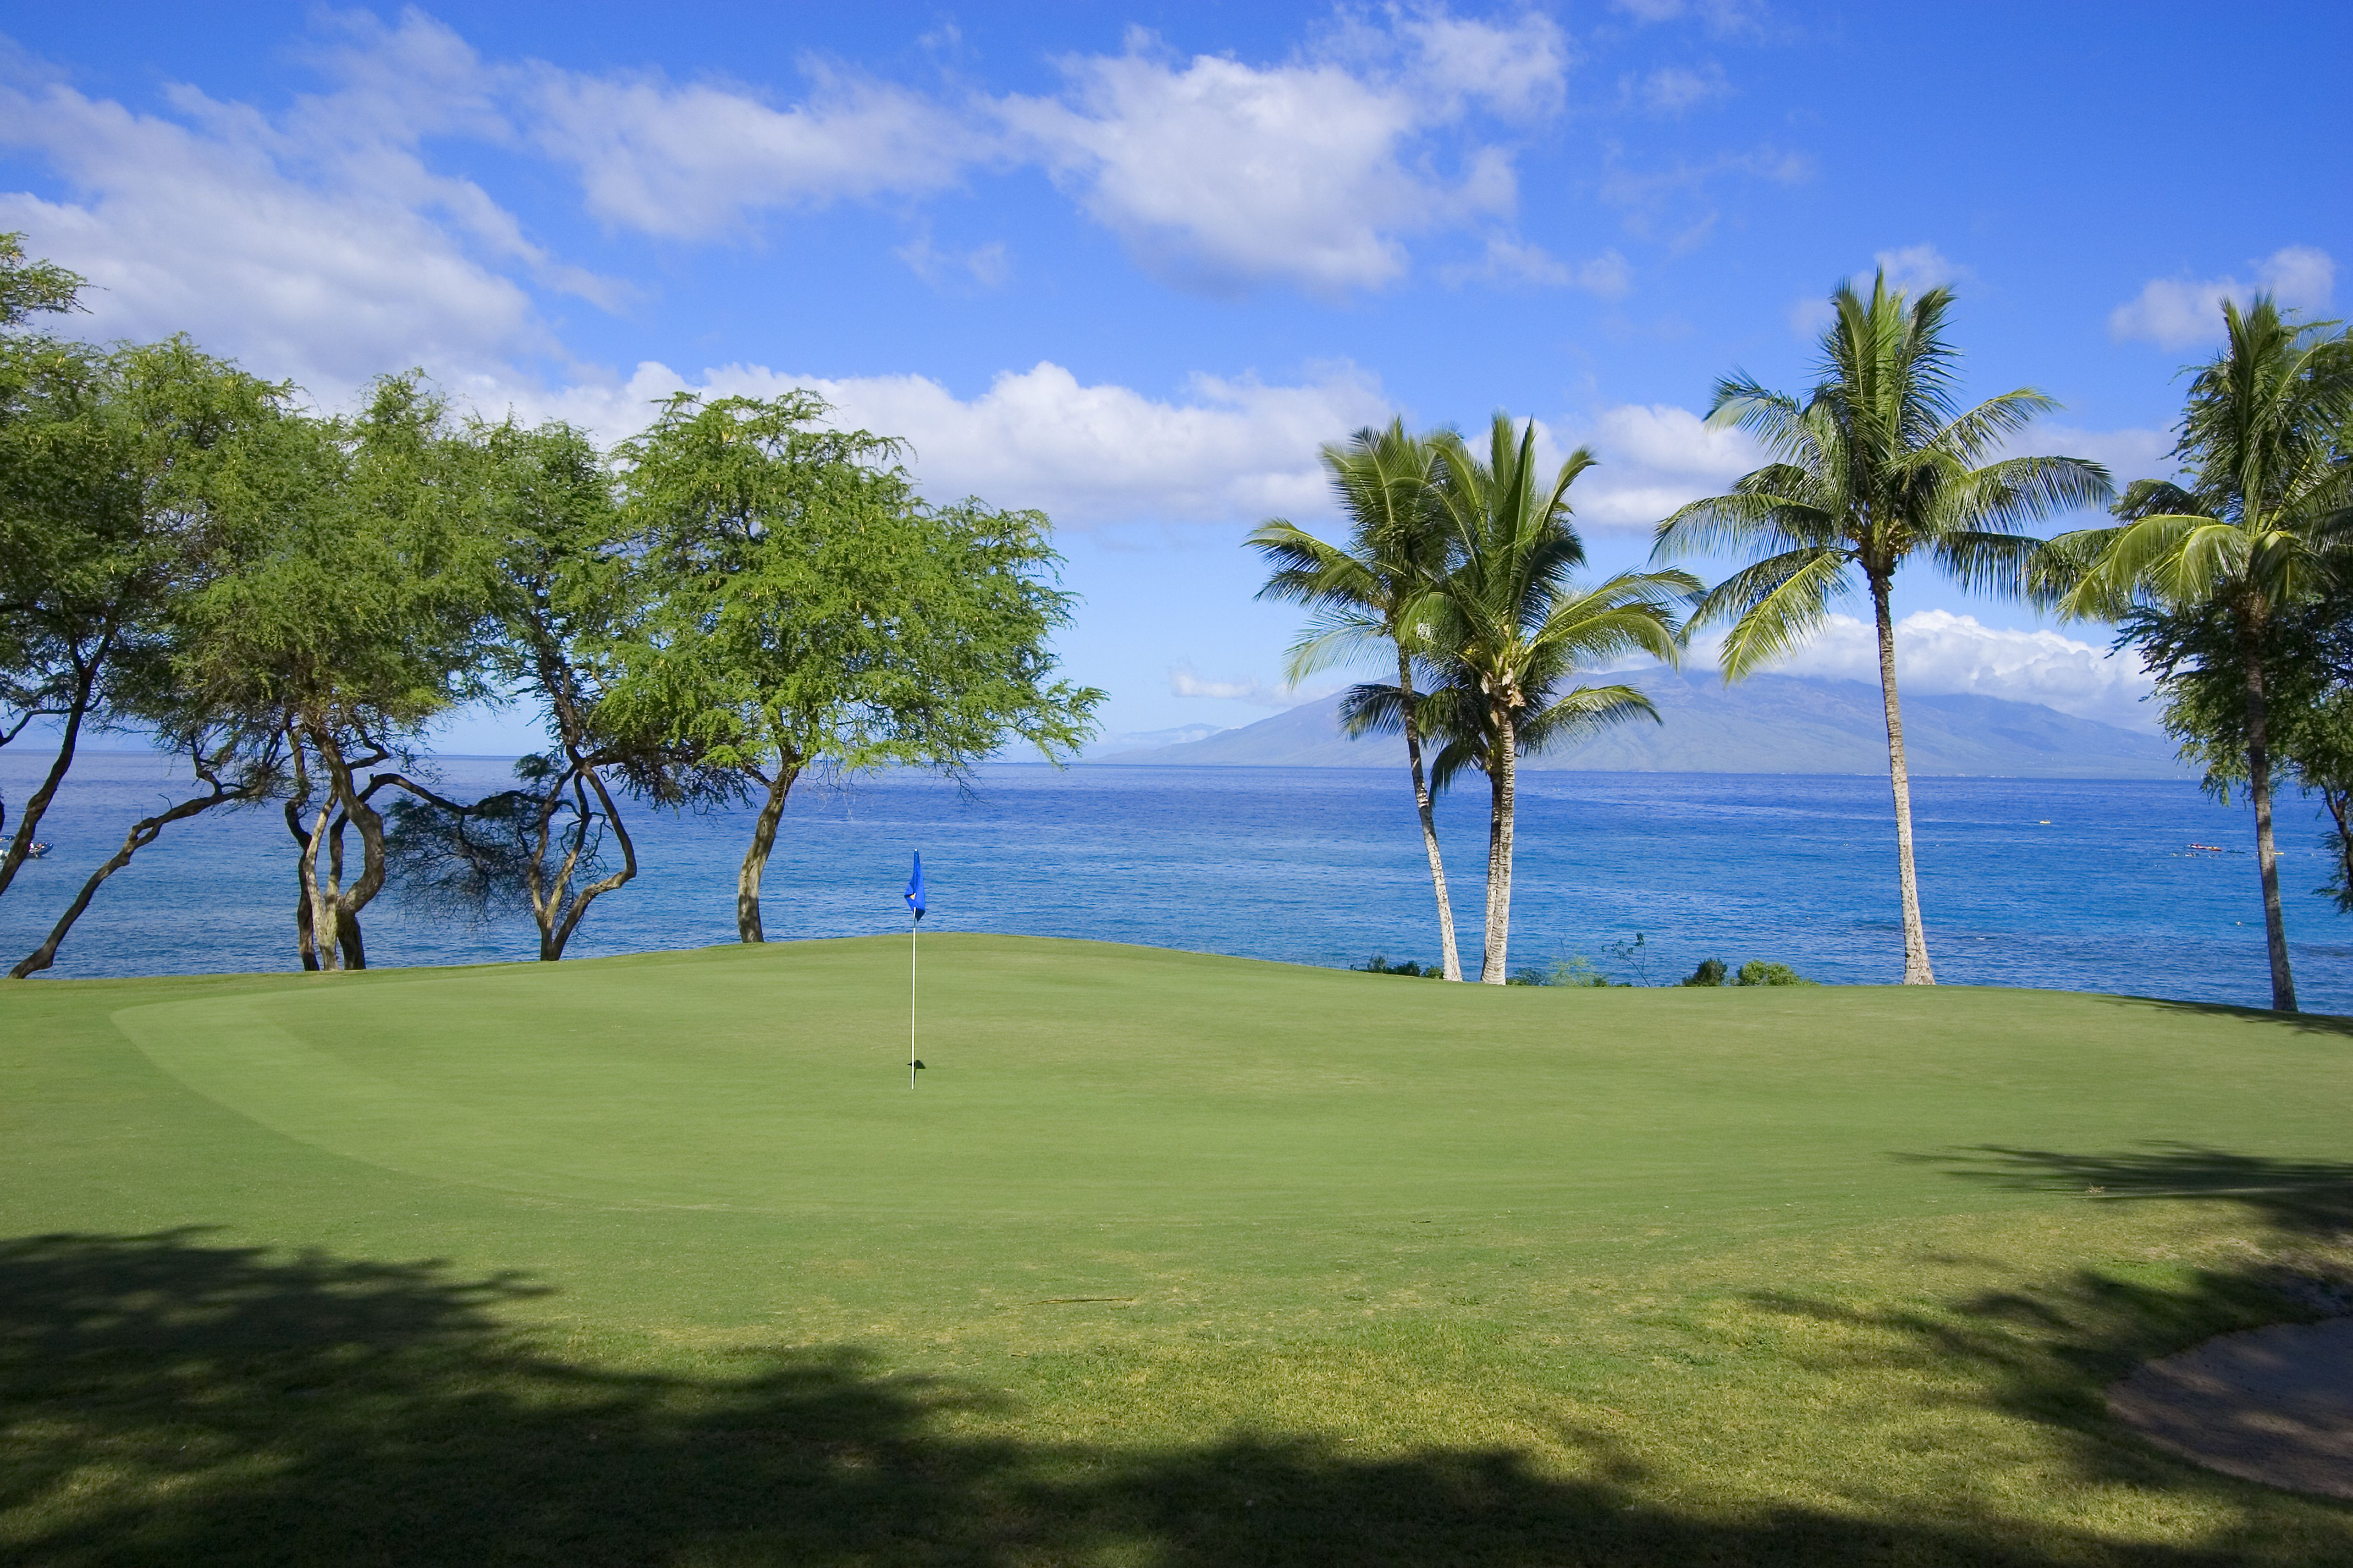 Golf Cruise to Hawaii the Ultimate Golf Vacation